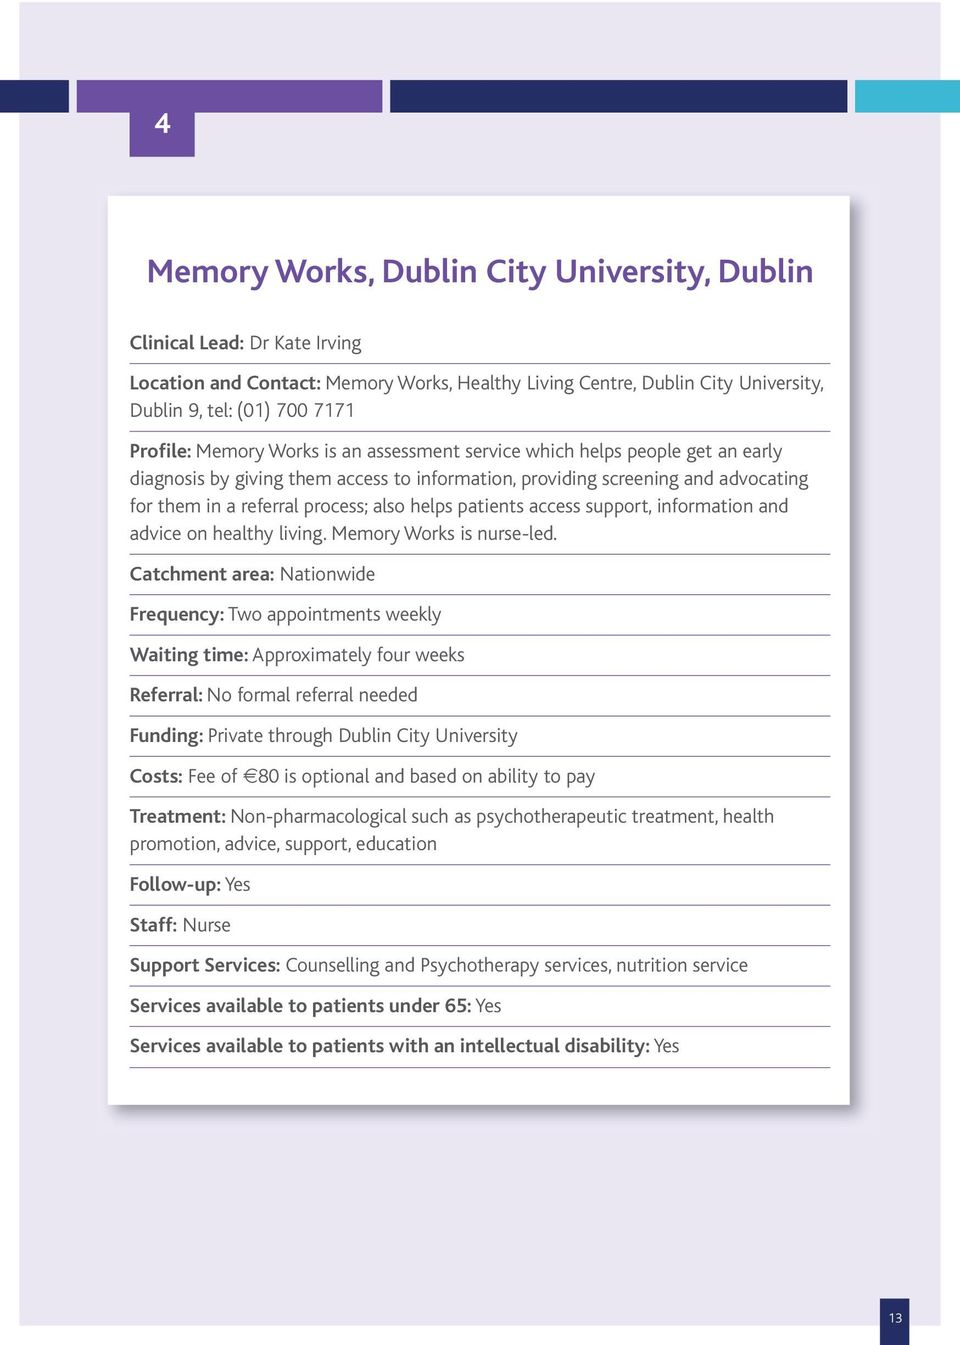 patients access support, information and advice on healthy living. Memory Works is nurse-led.